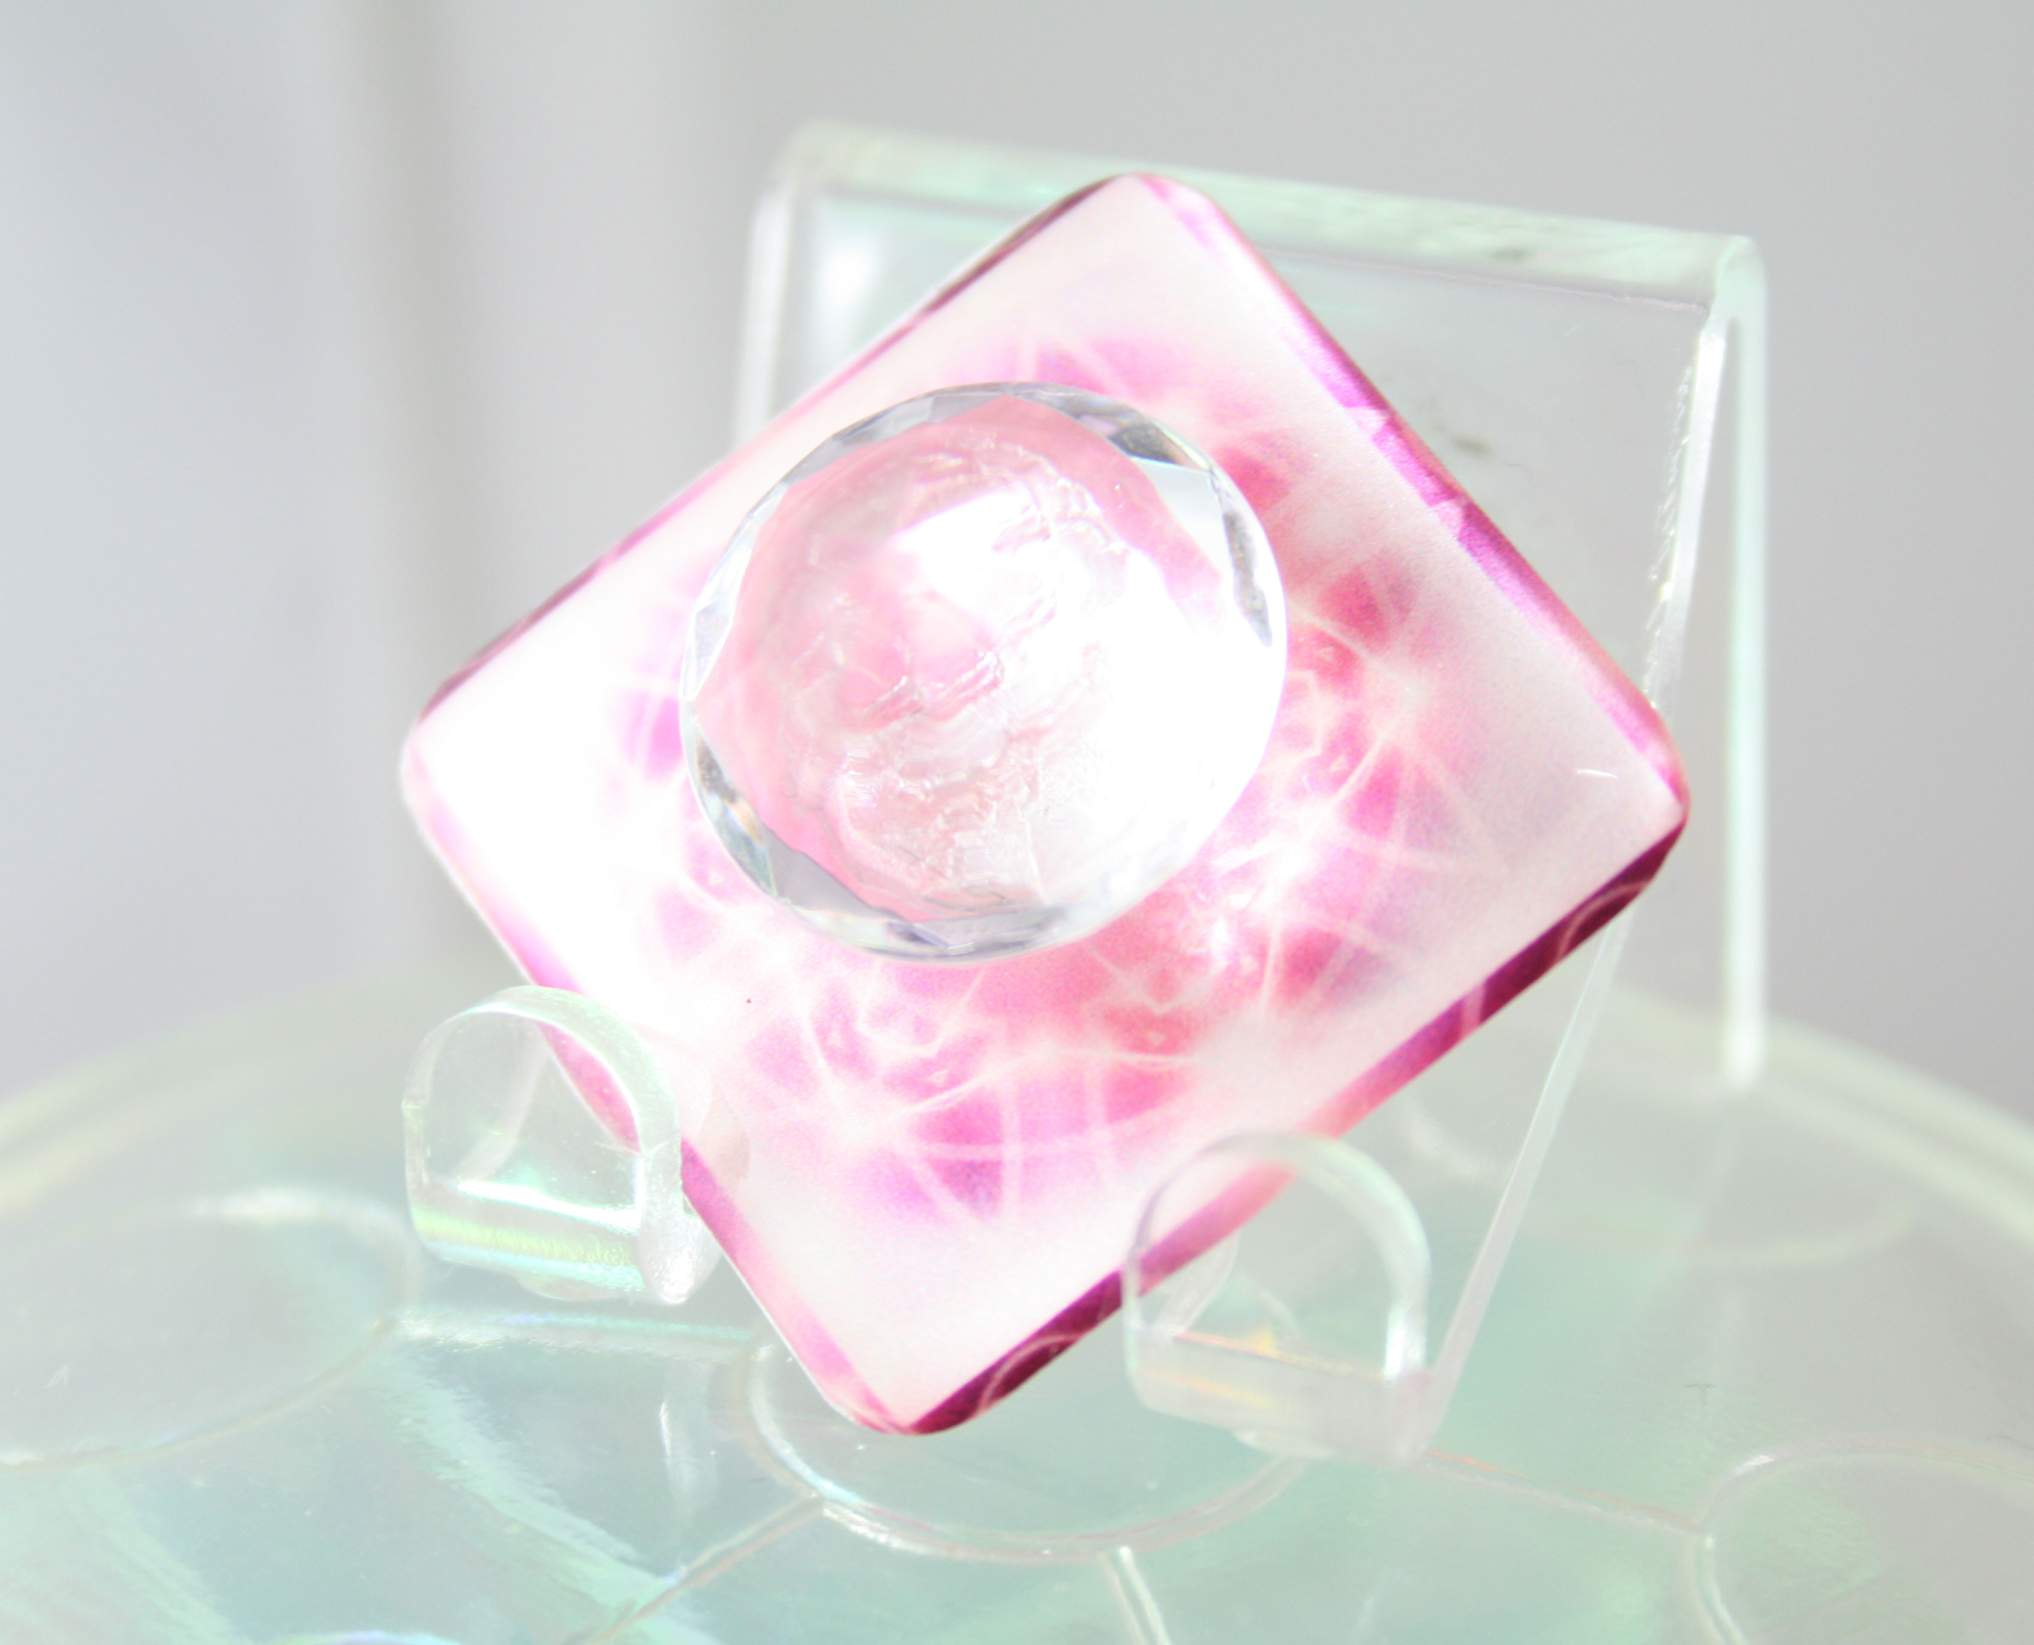 pure_infinite_pink-singleflat-clear01